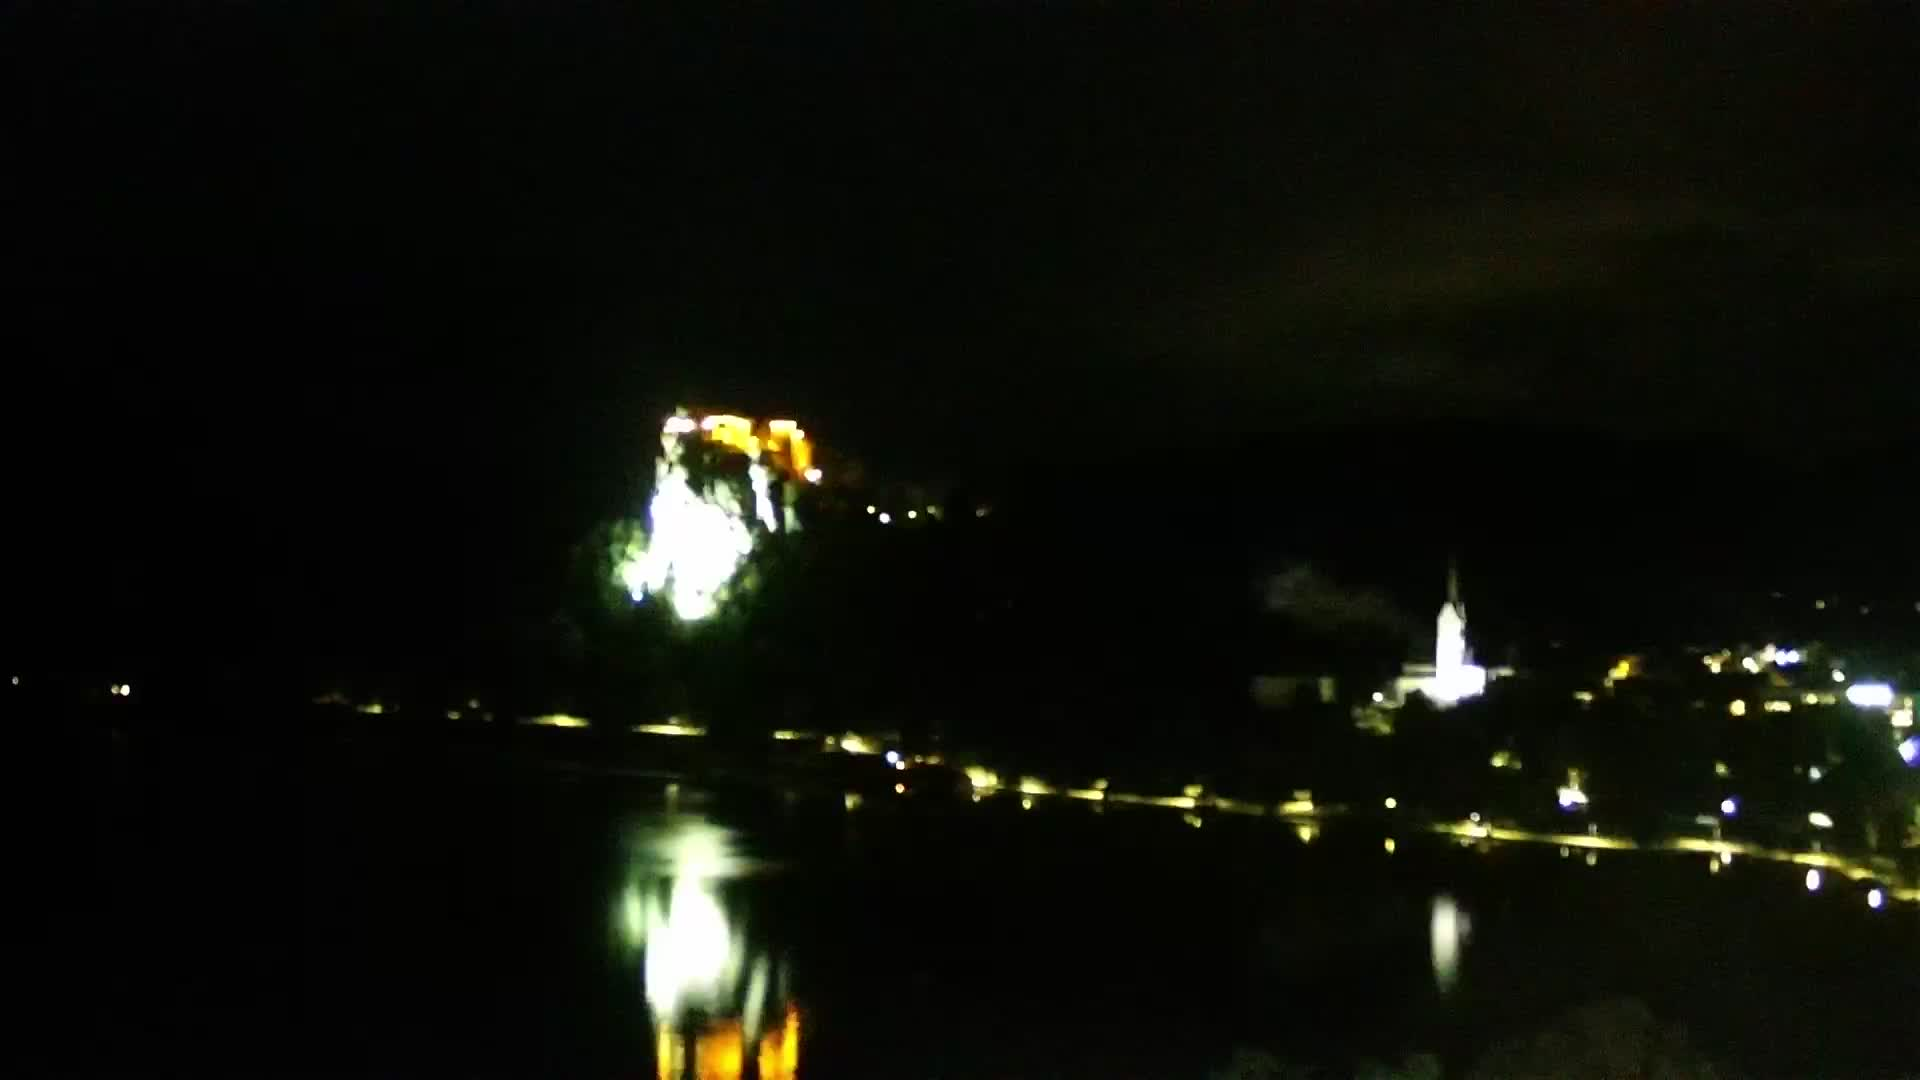 Bled Tue. 23:52